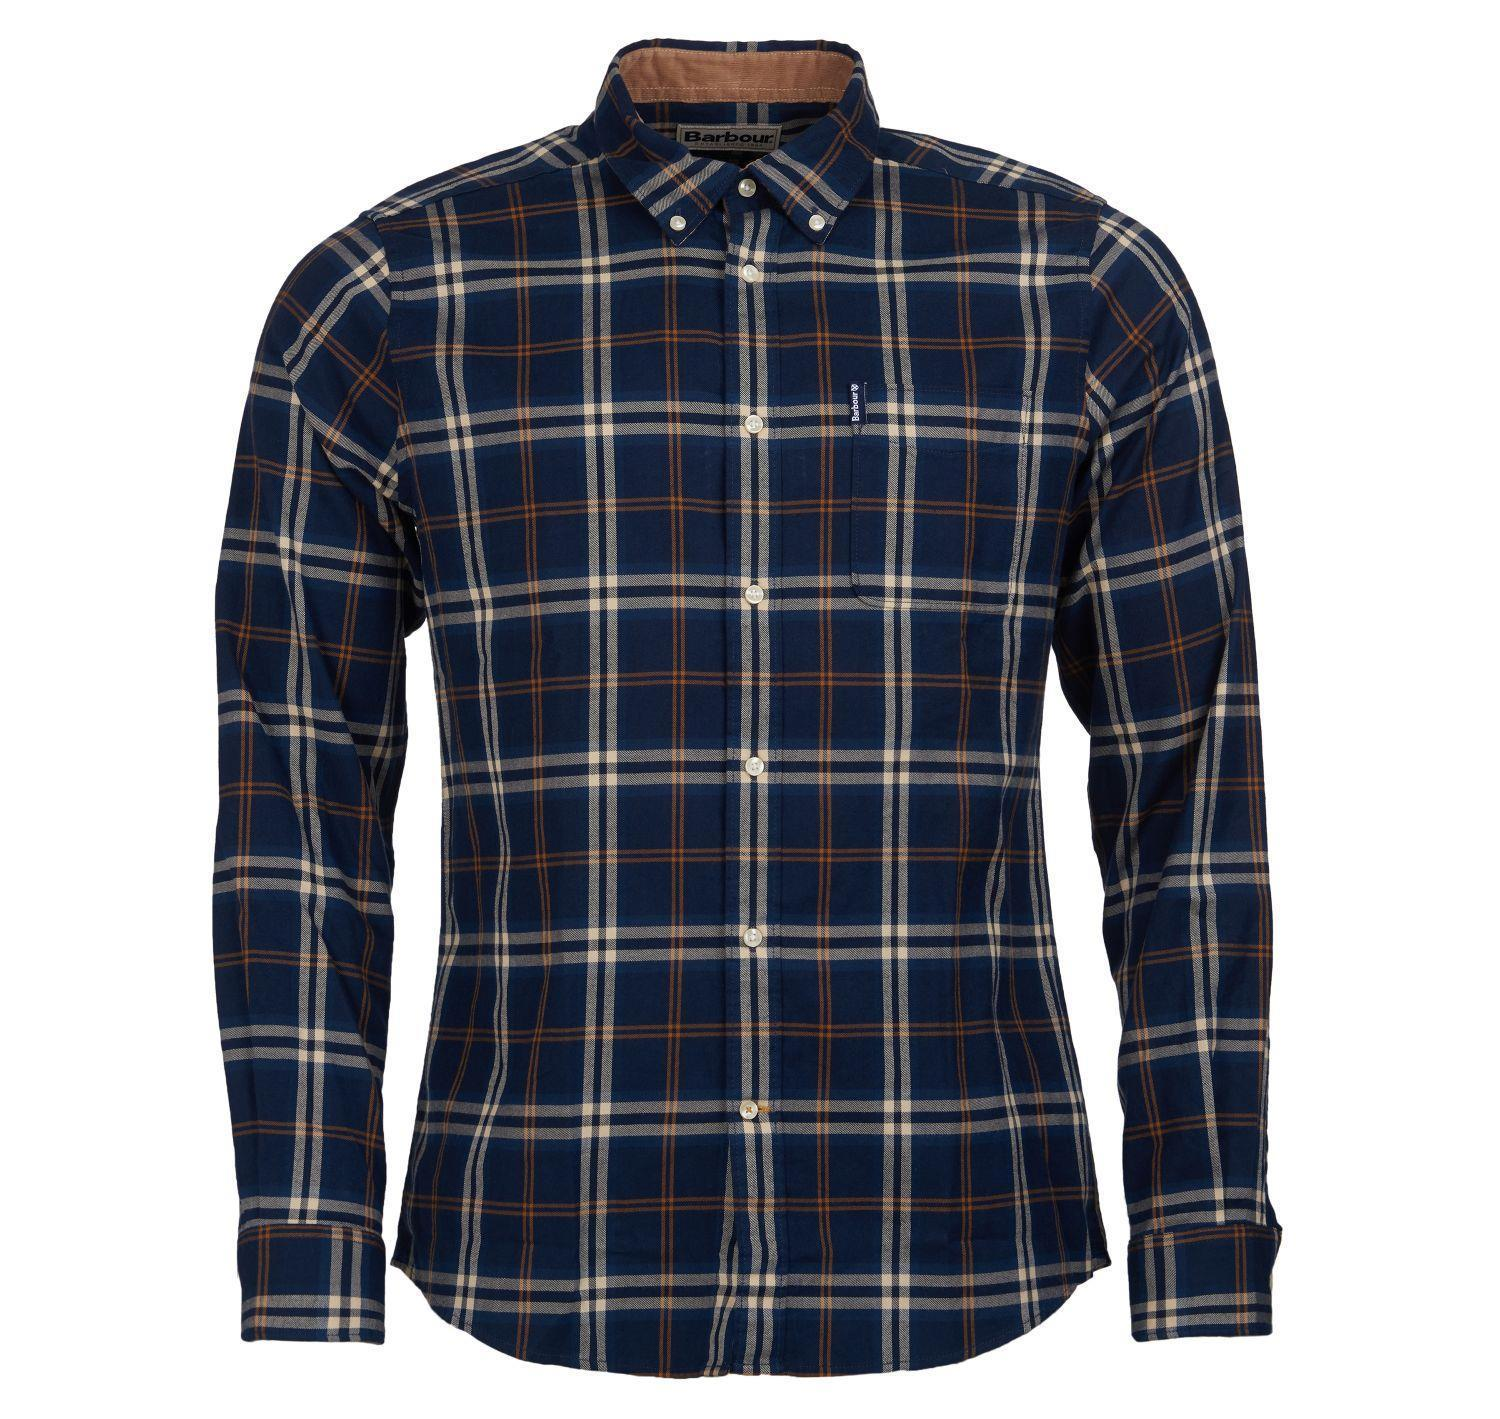 Barbour HIGHLAND CHECK 20-Barbour-www.gunnaroye.no